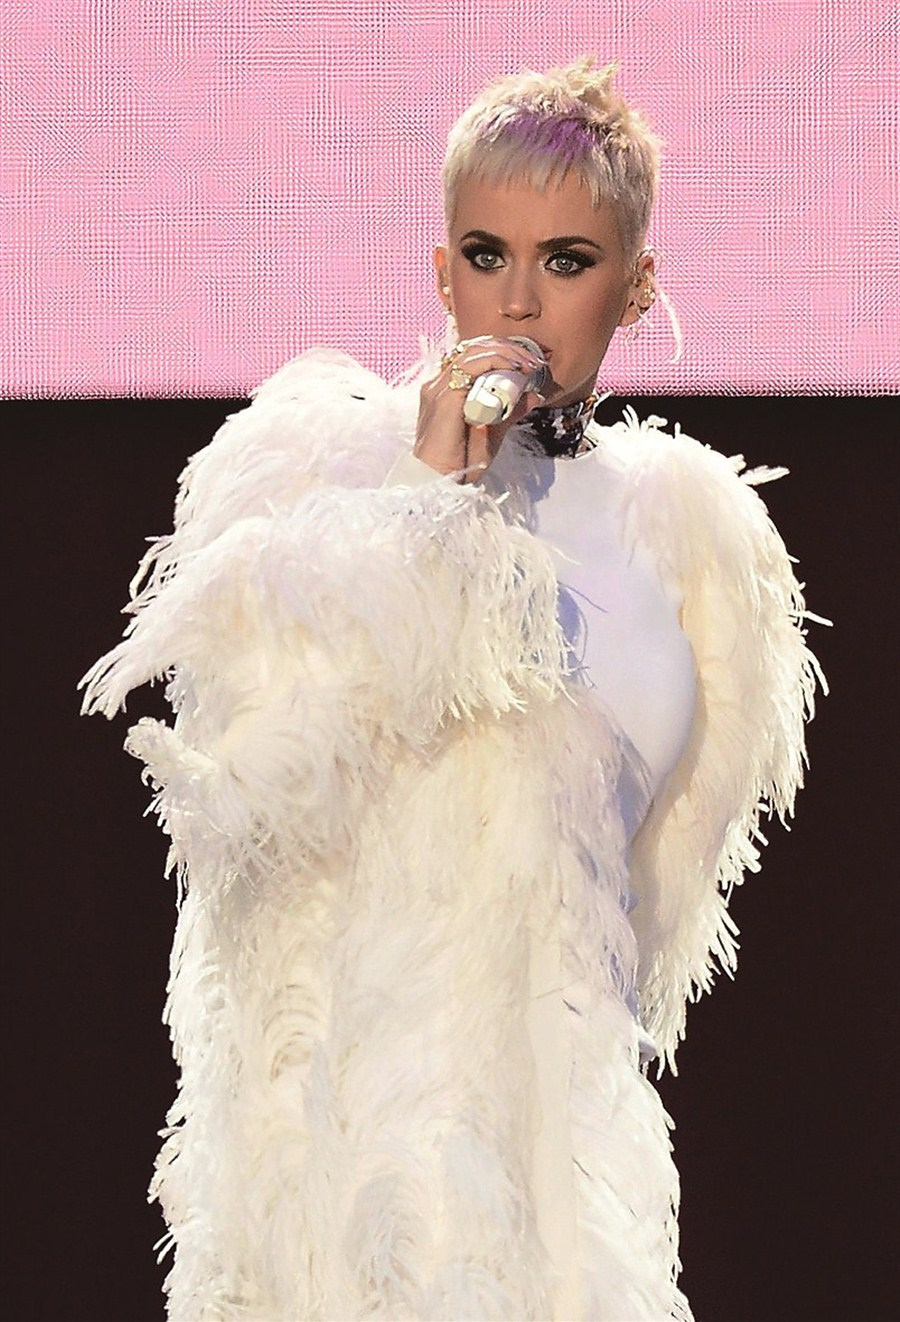 Katy Perry returns as a sultry 30-something